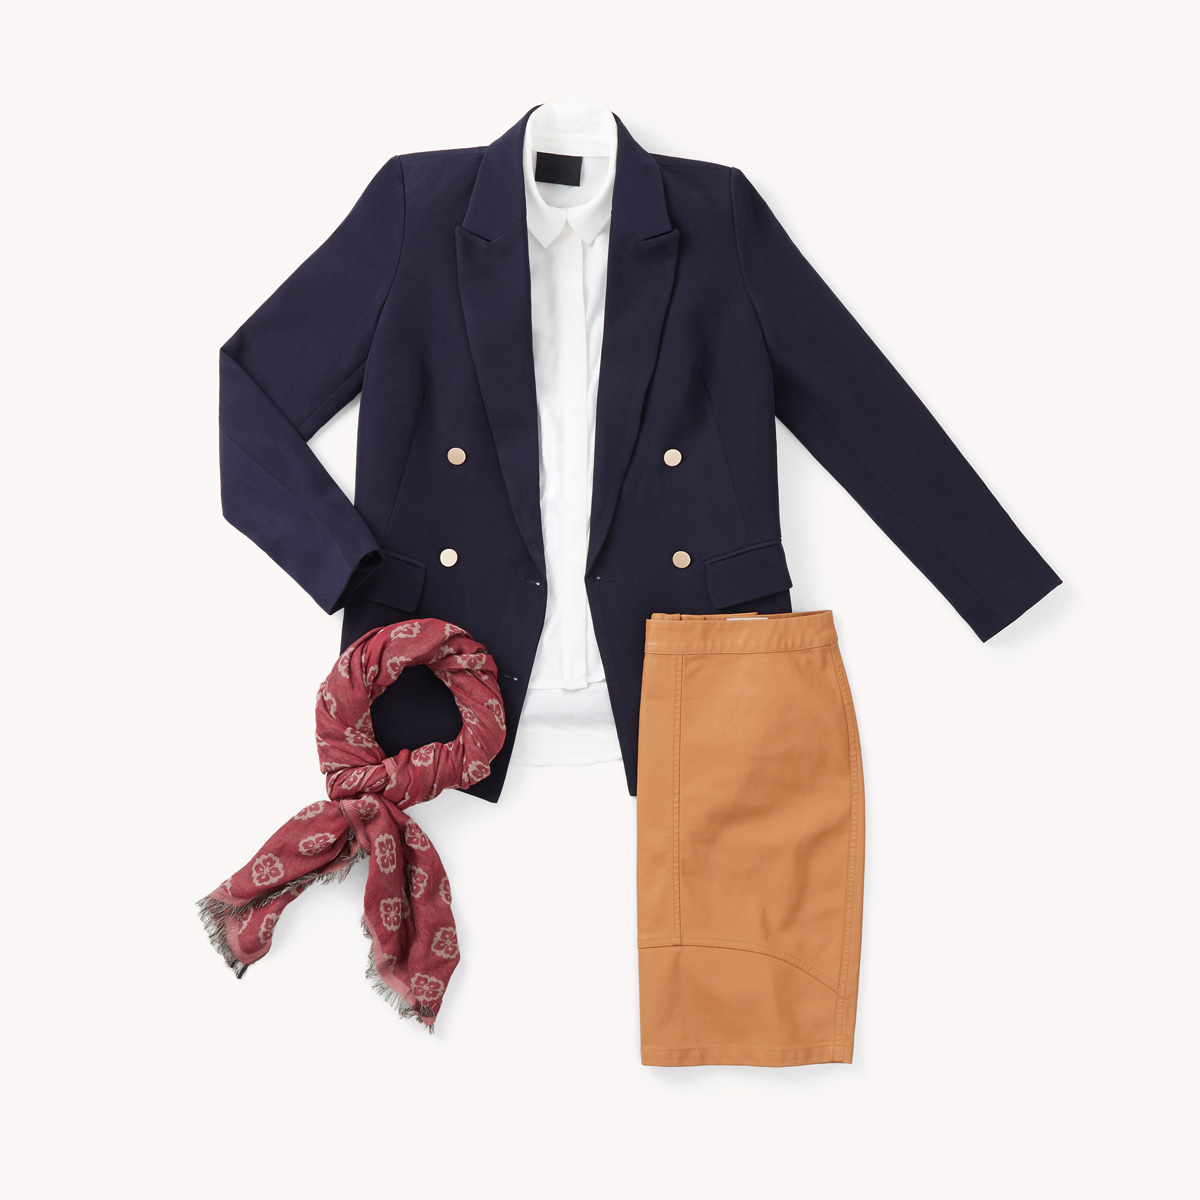 tuesday outfit for february